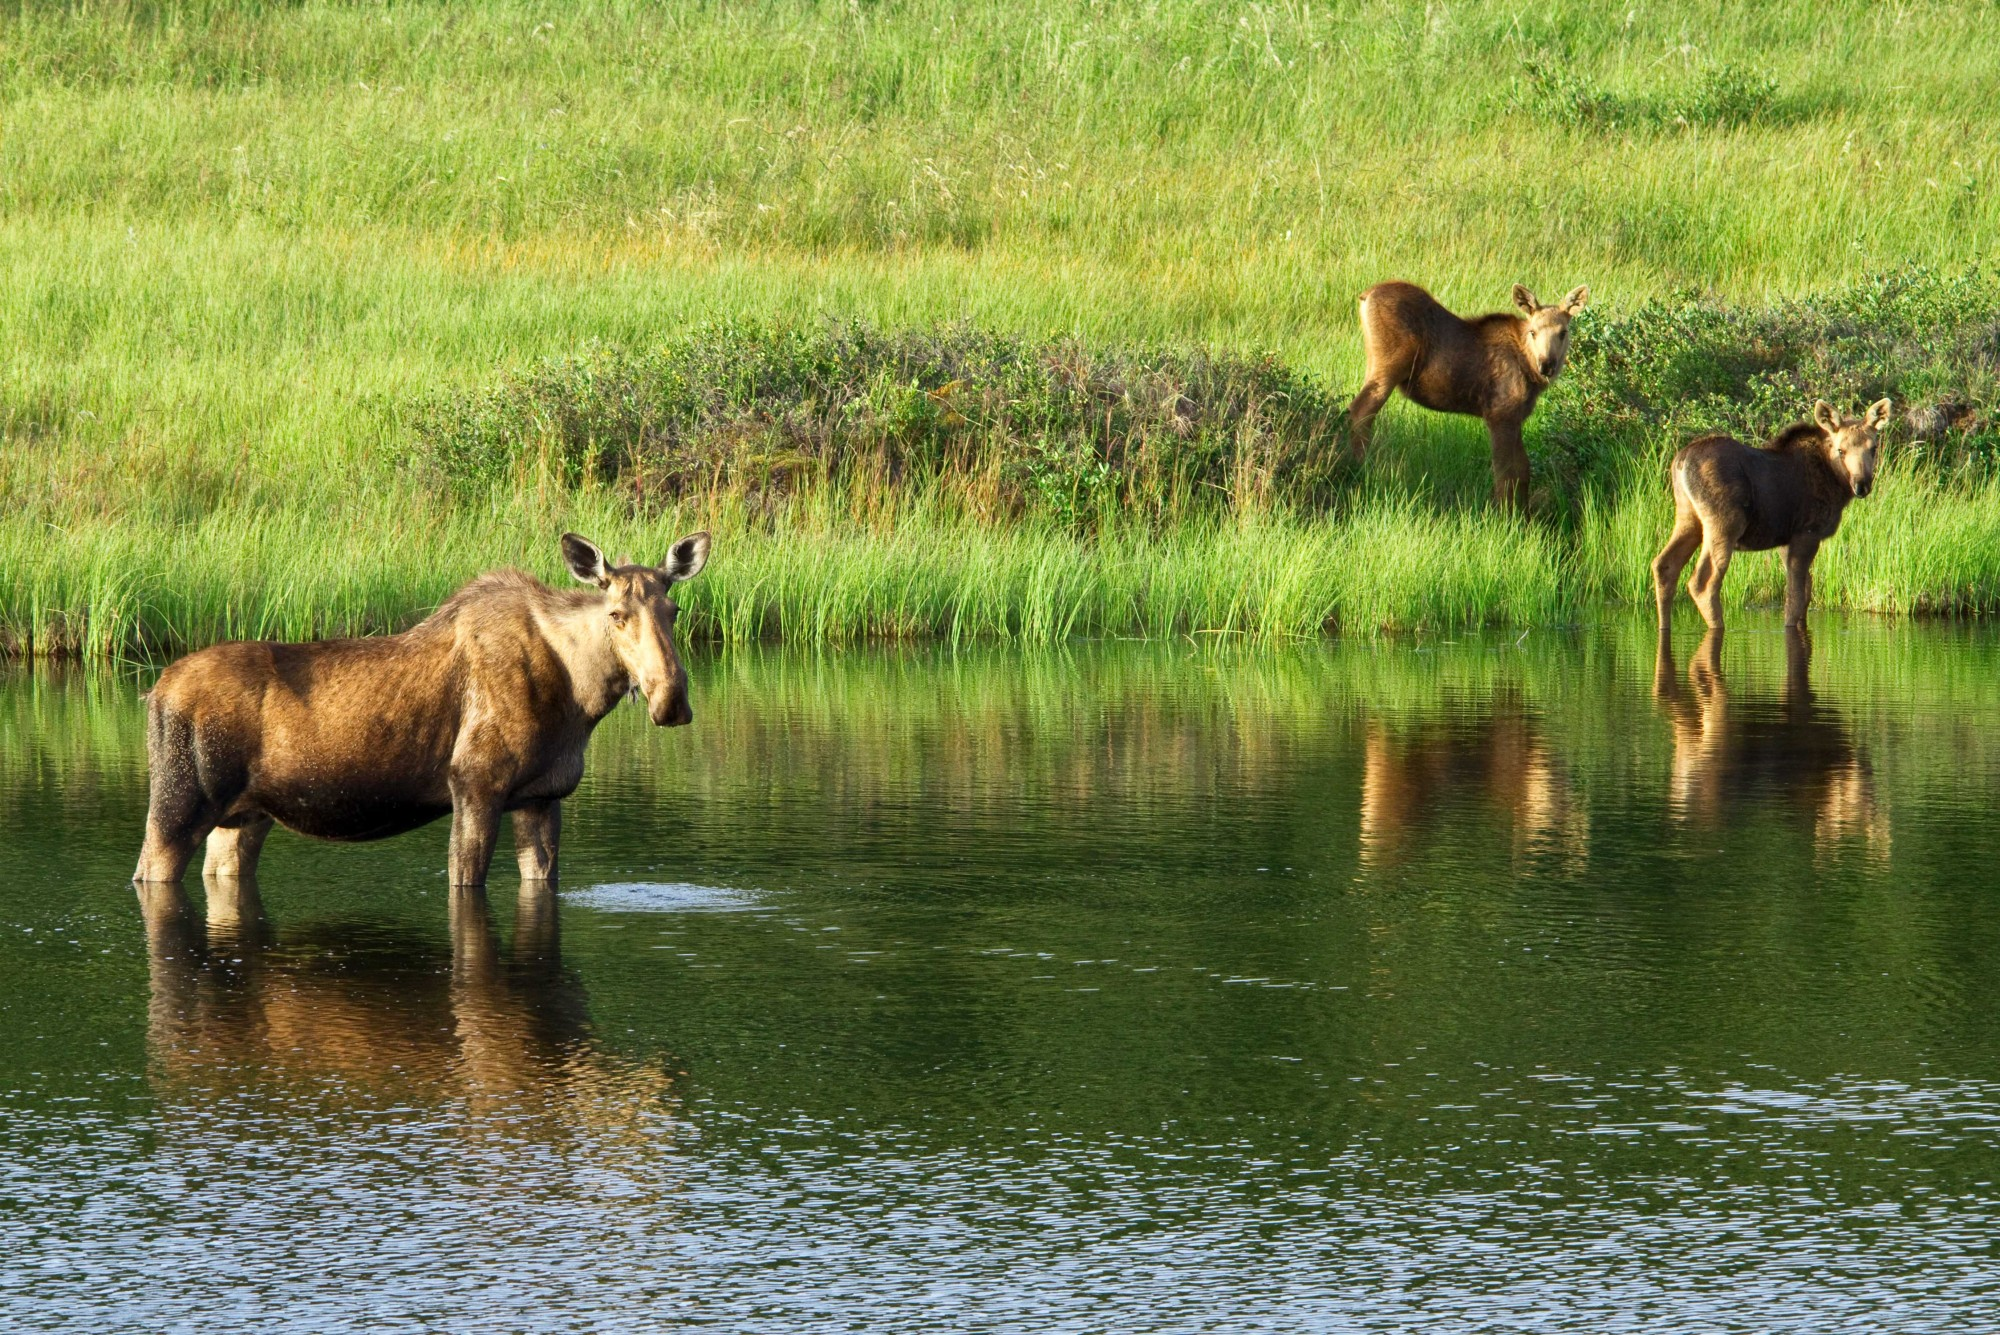 Moose cow at water with two calves